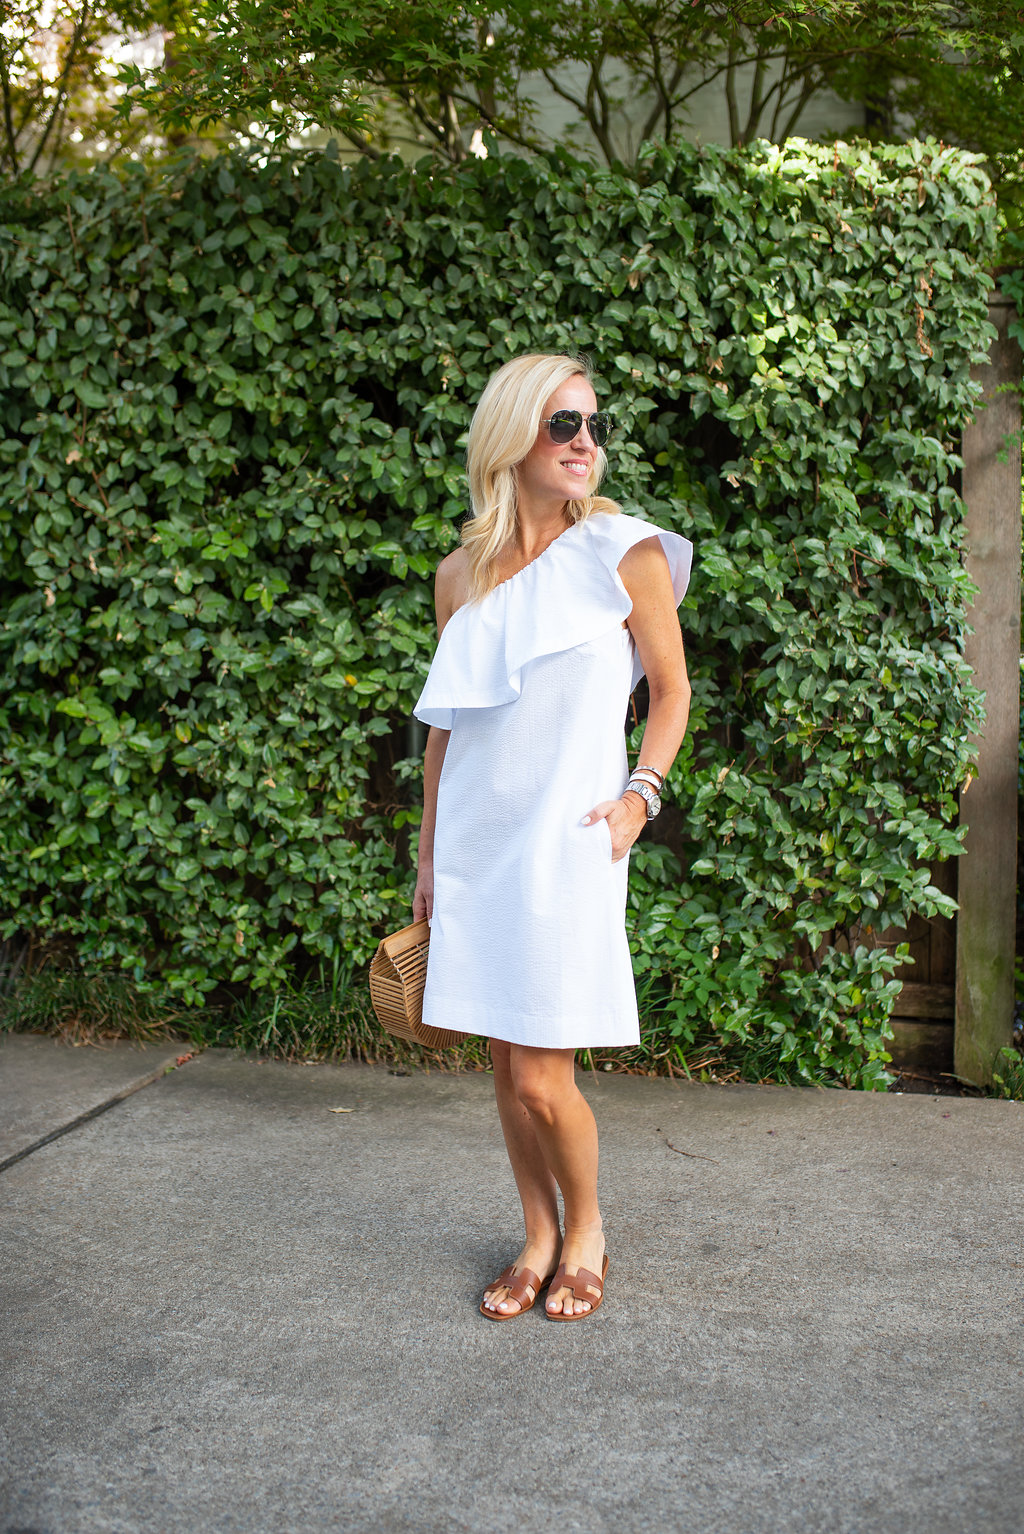 Summer Favorite: Bright White One Shoulder Ruffle Dress